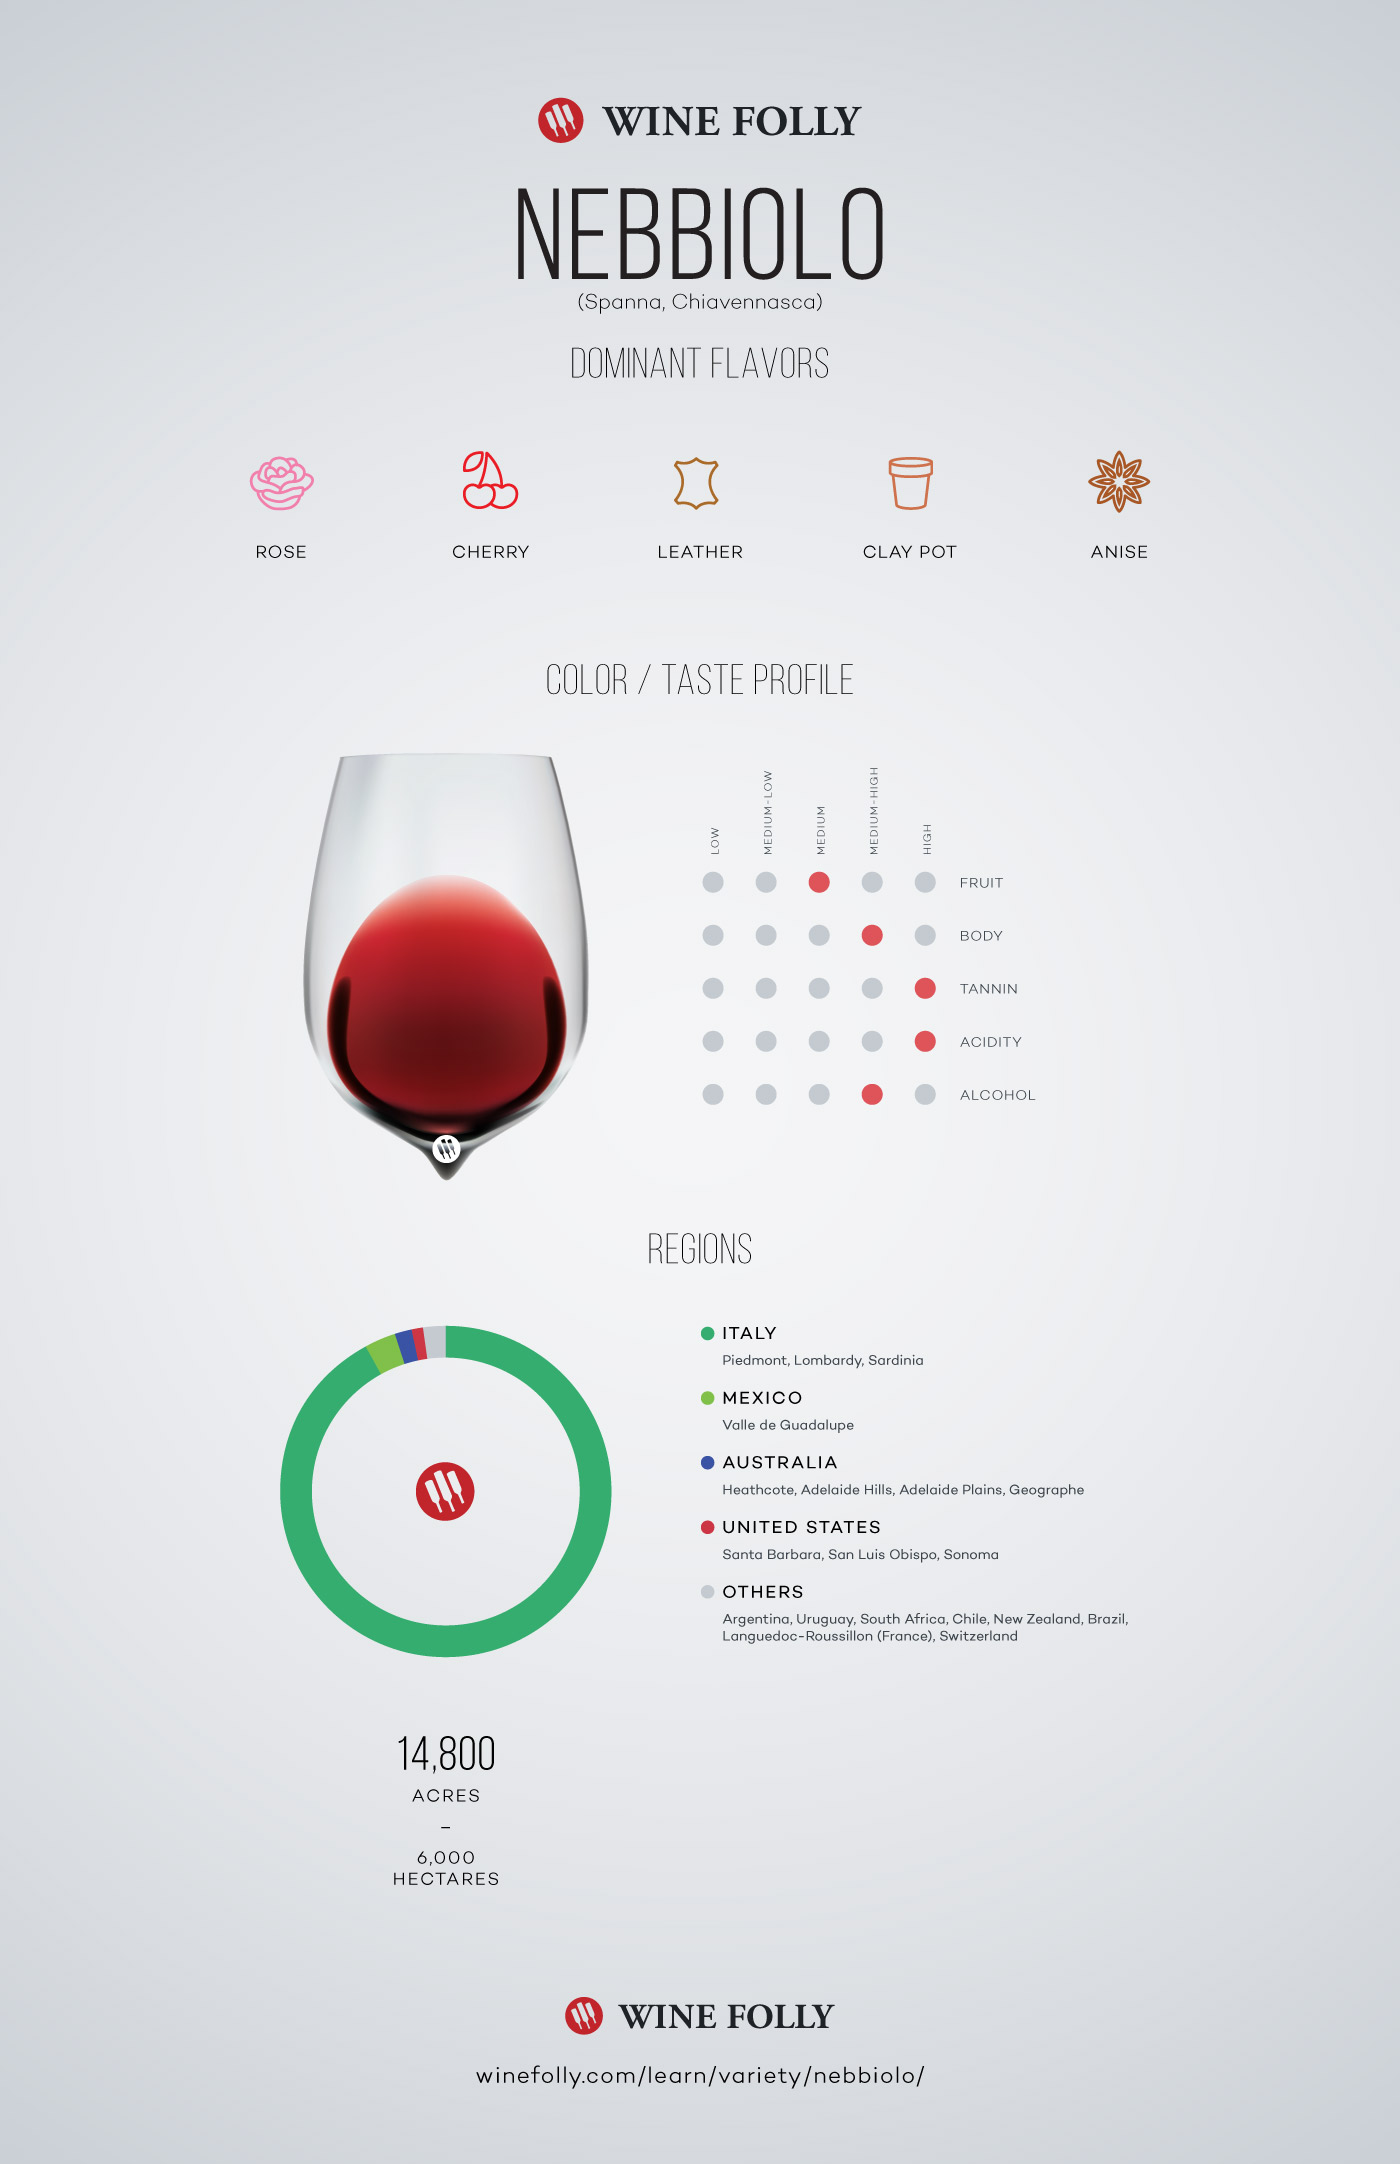 Nebbiolo Wine Profile by Wine Folly